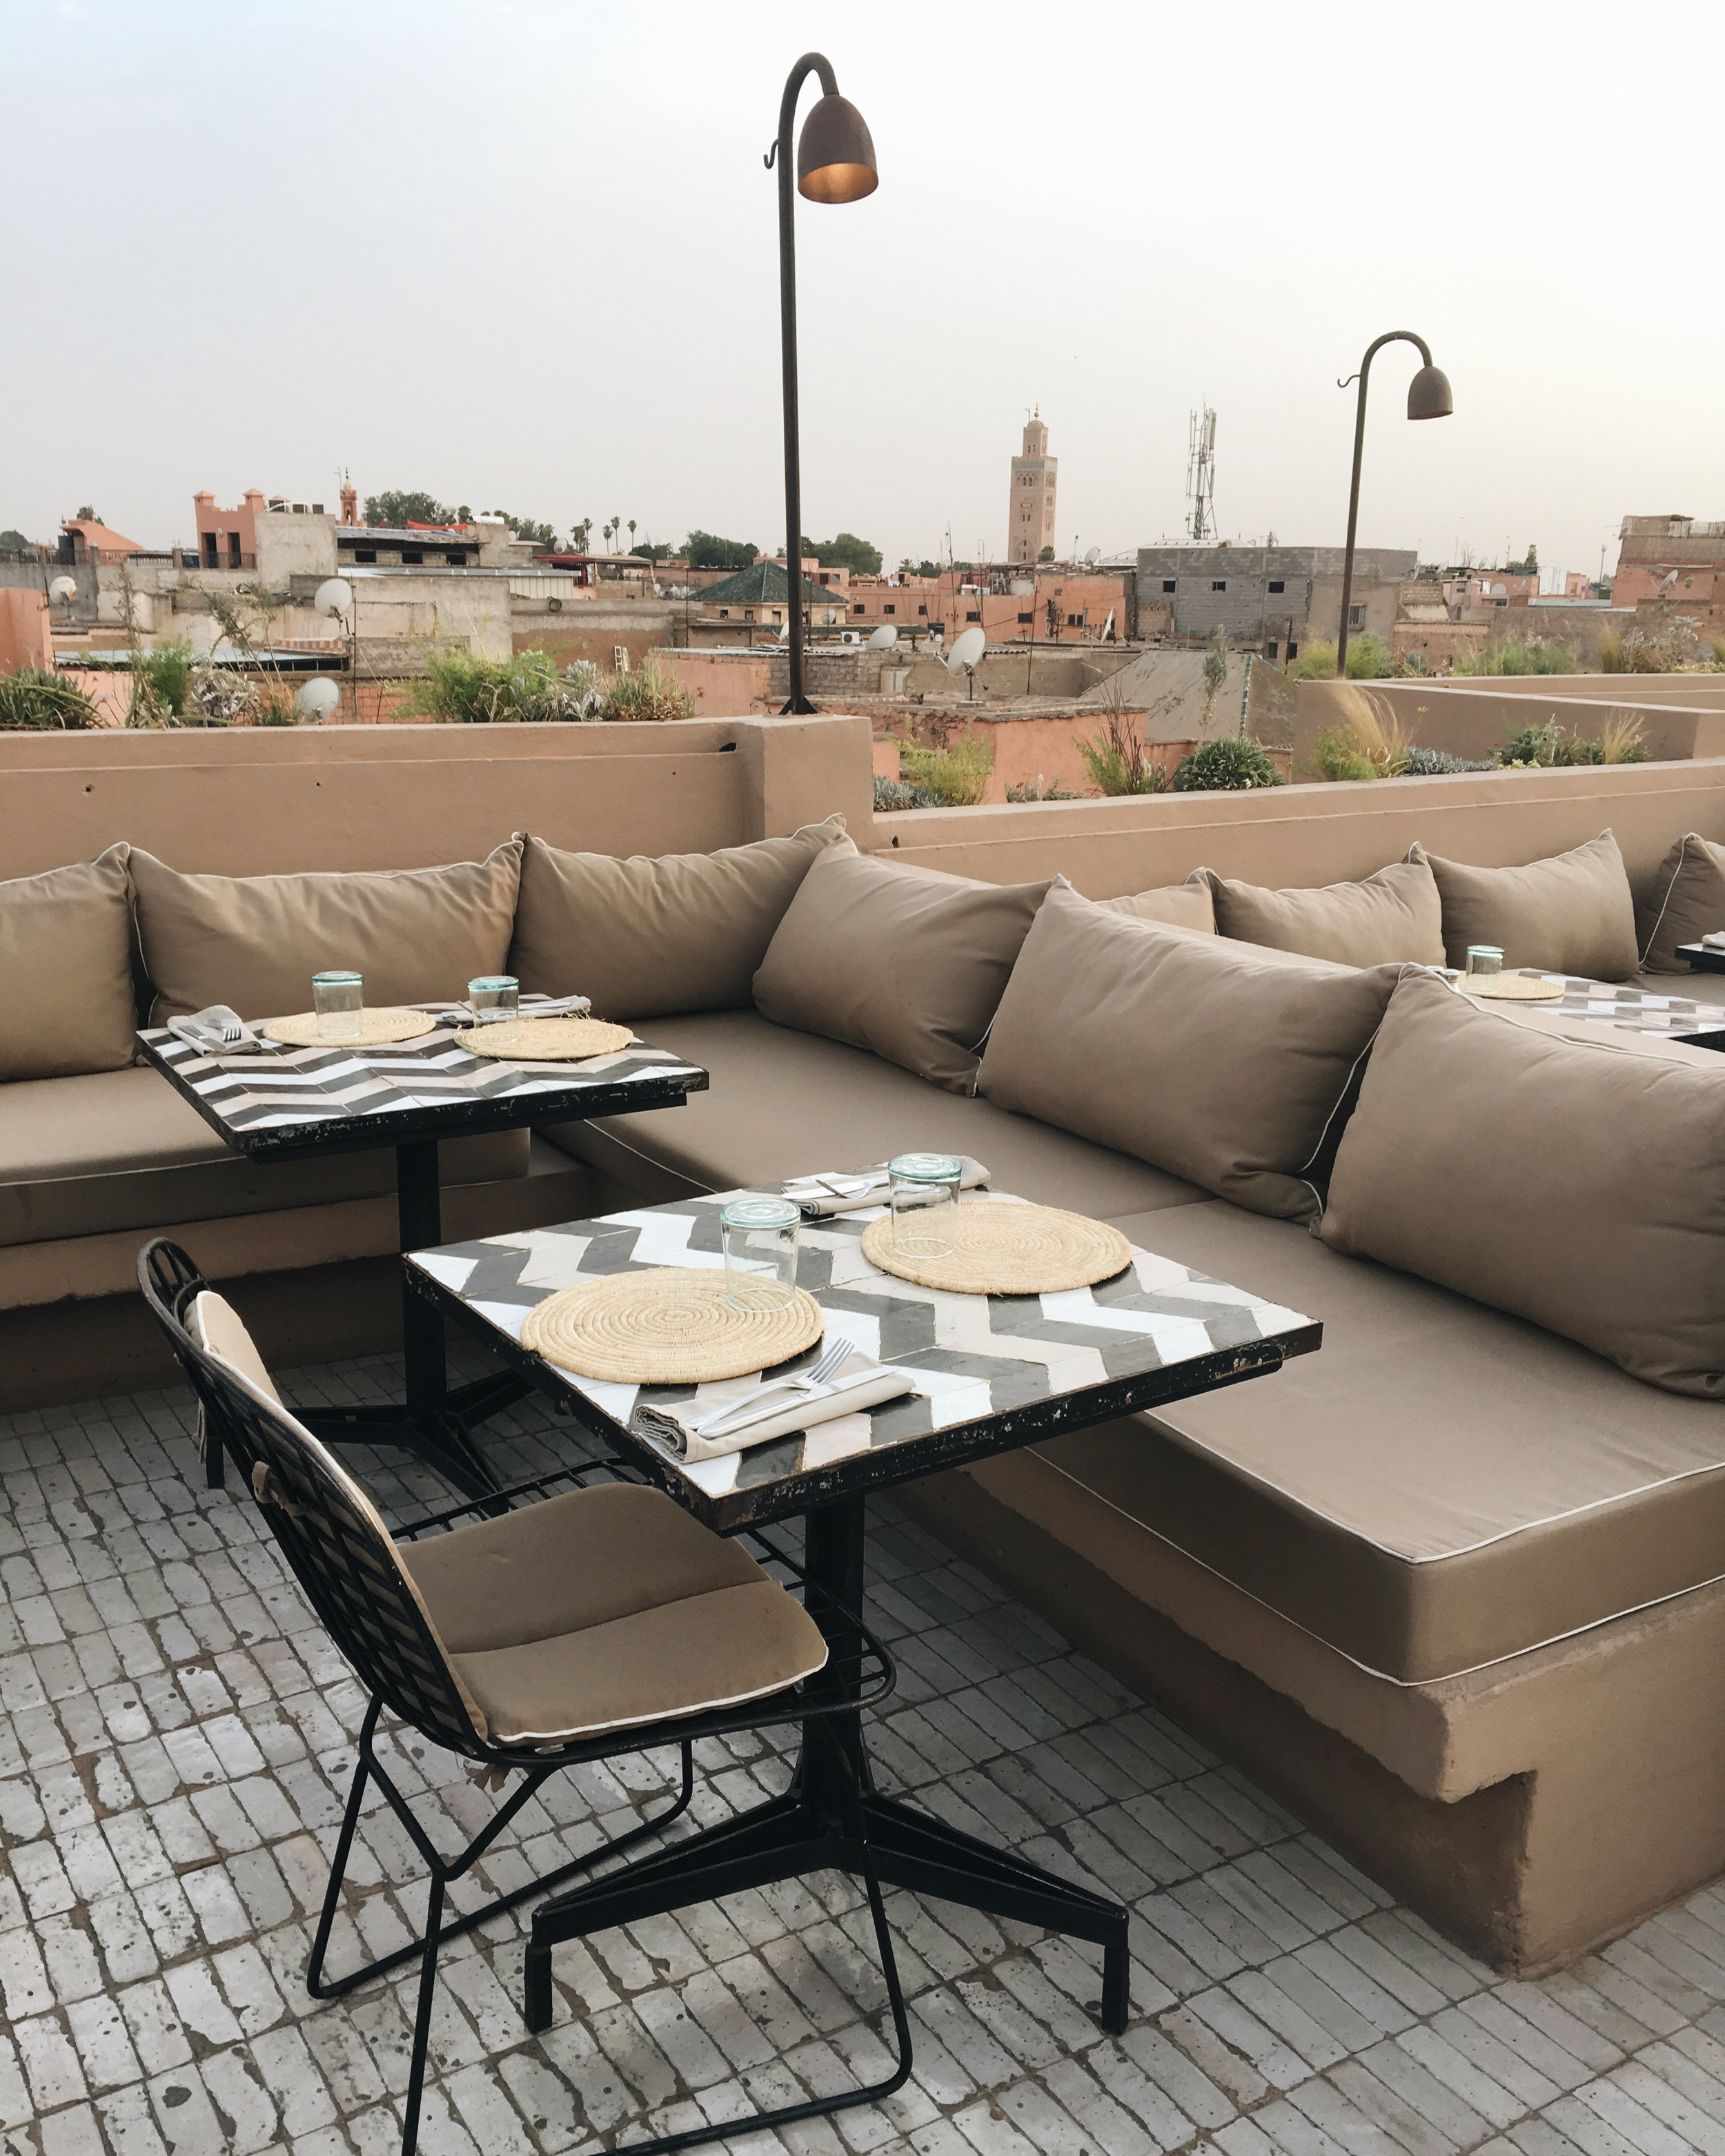 Nomad restaurant | Marrakech